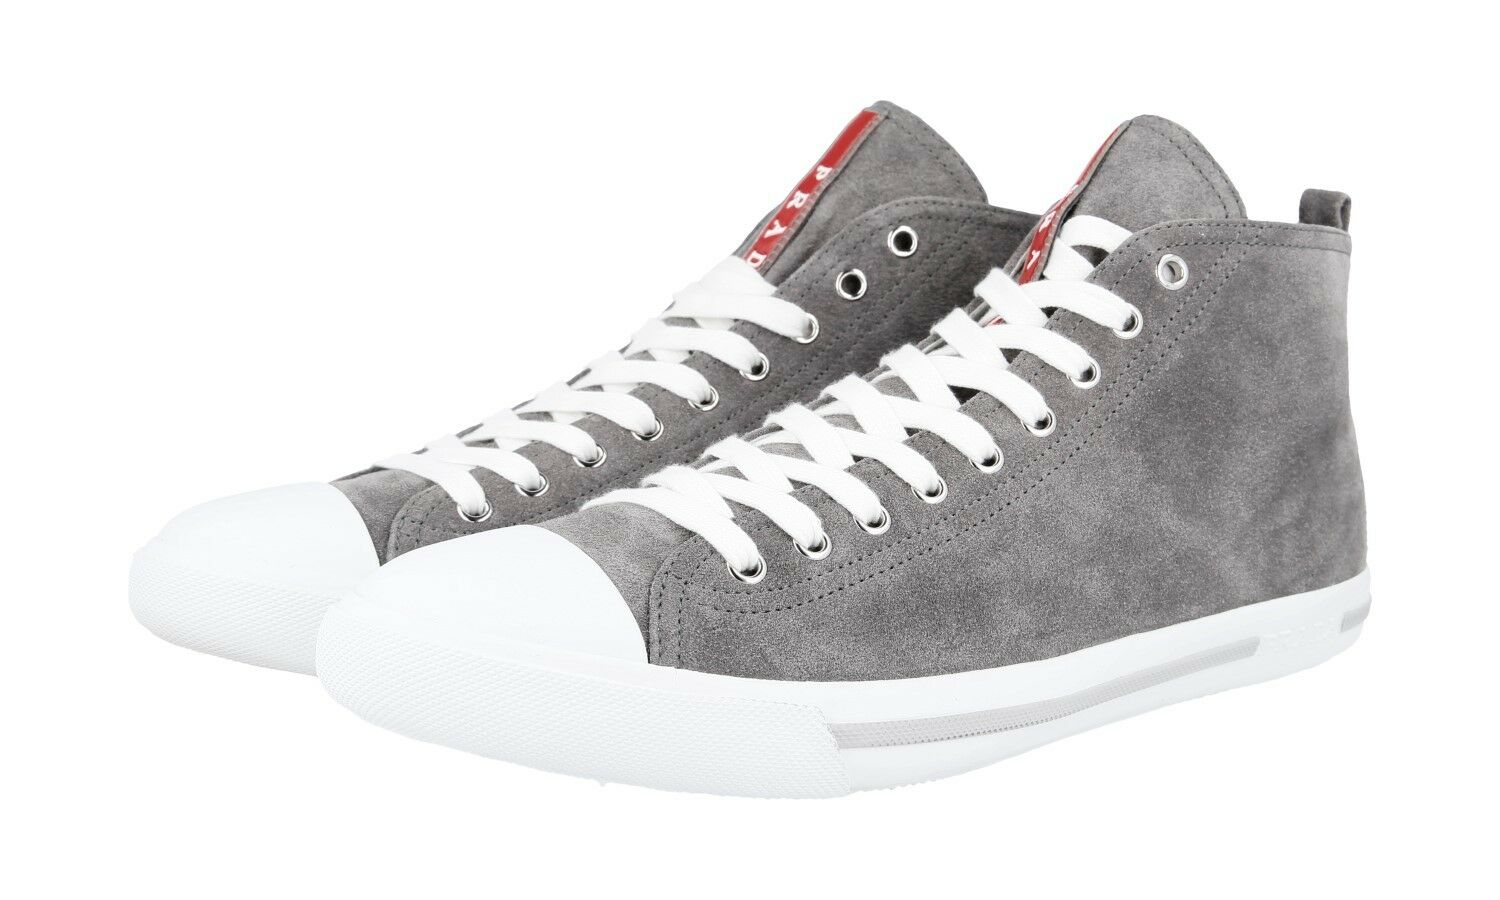 AUTH PRADA HIGH TOP SNEAKERS SHOES 4T2583 GREY SUEDE NEW 9 43 43,5